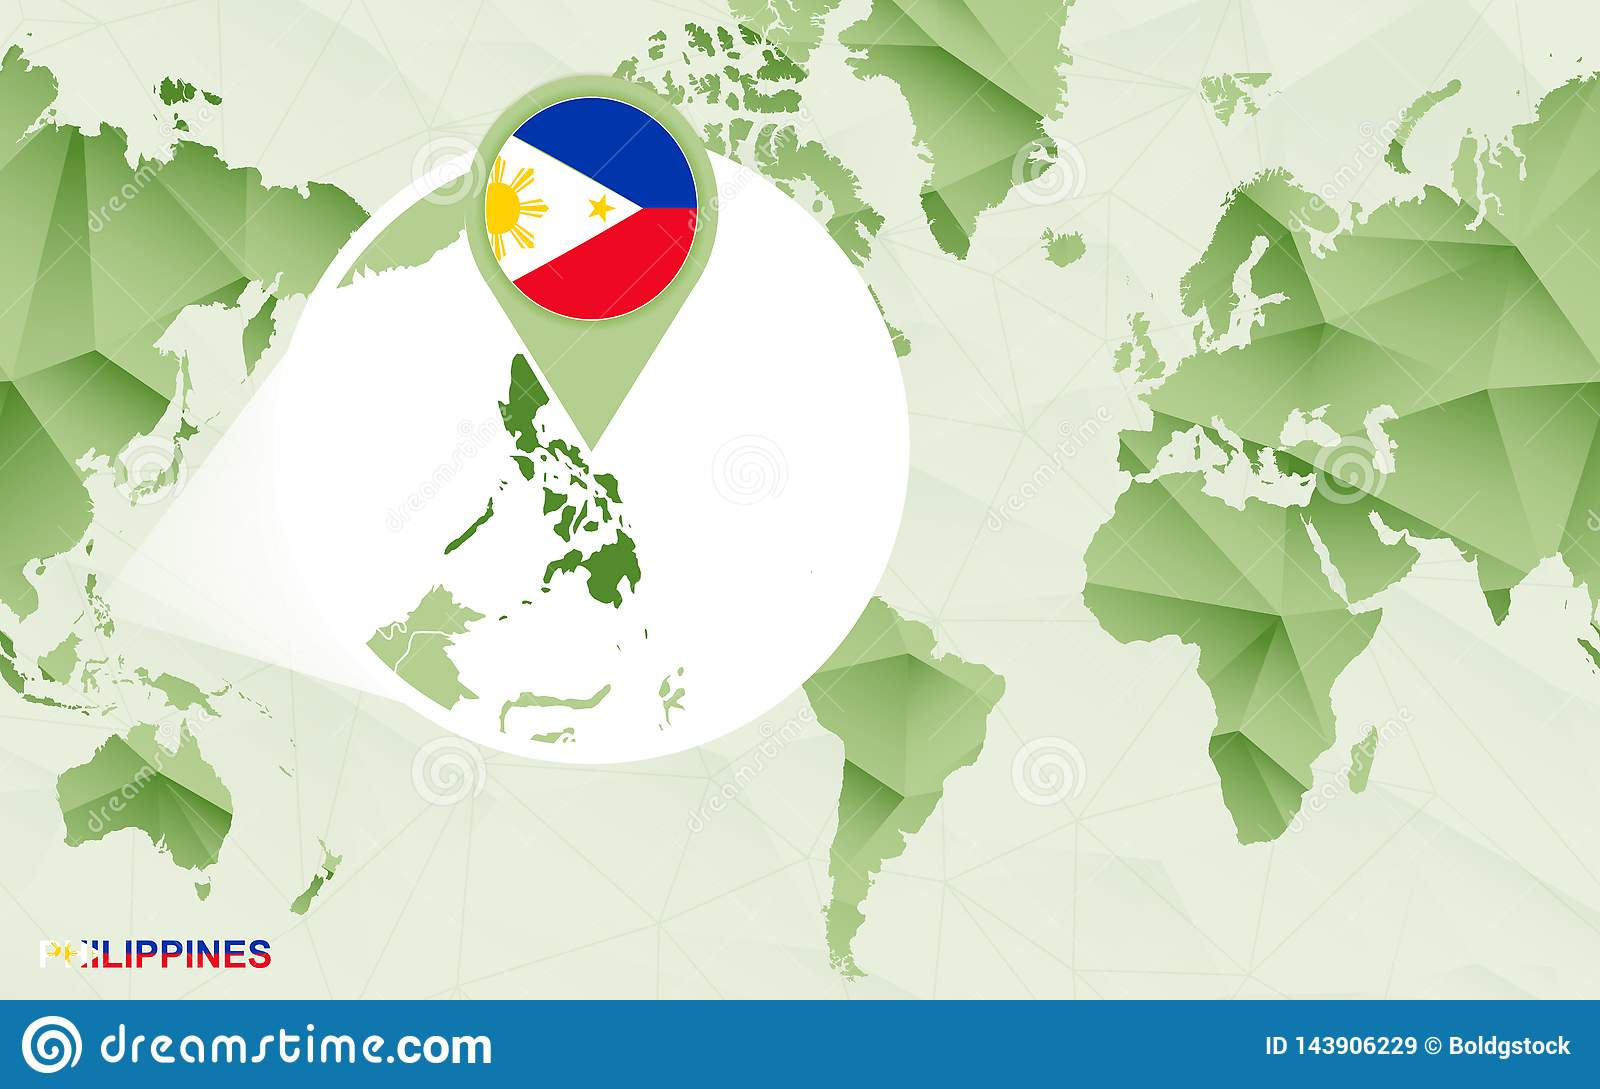 America Centric World Map With Magnified Philippines Map ...